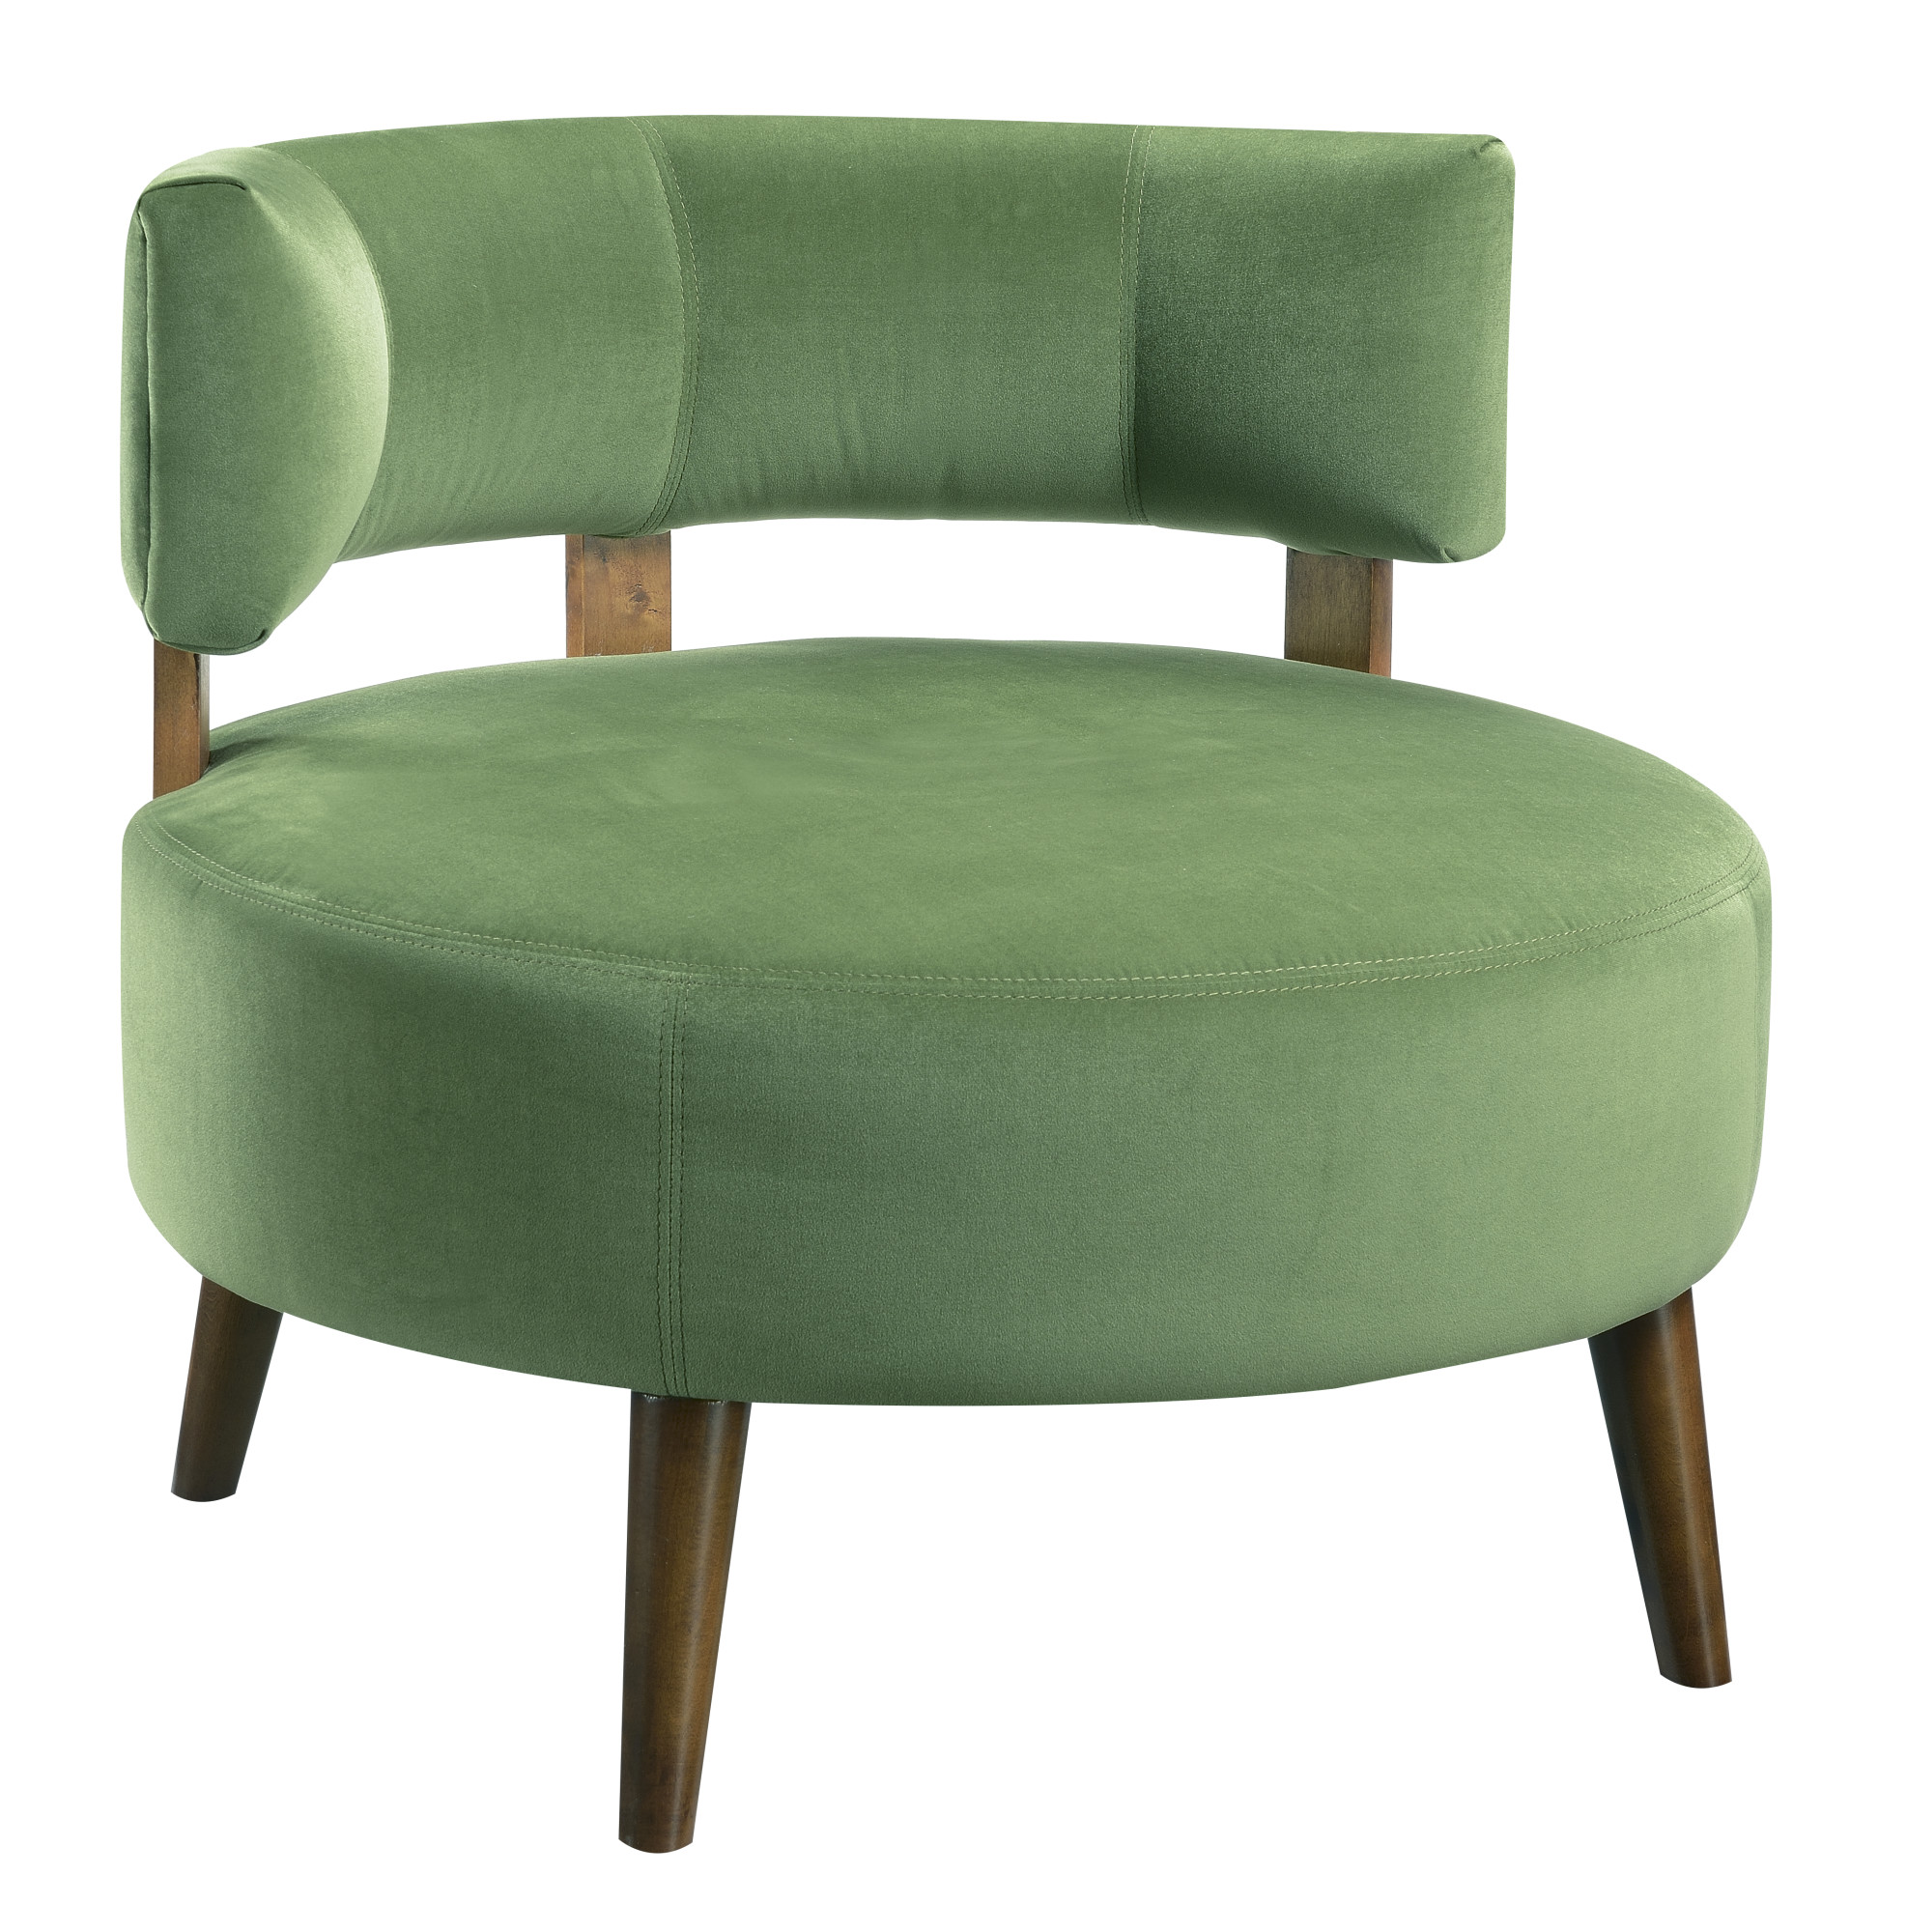 Emerald Home Sphere Grass Green Accent Chair With Oversized Seat, Curved  Back, And Stitching Detail   Walmart.com